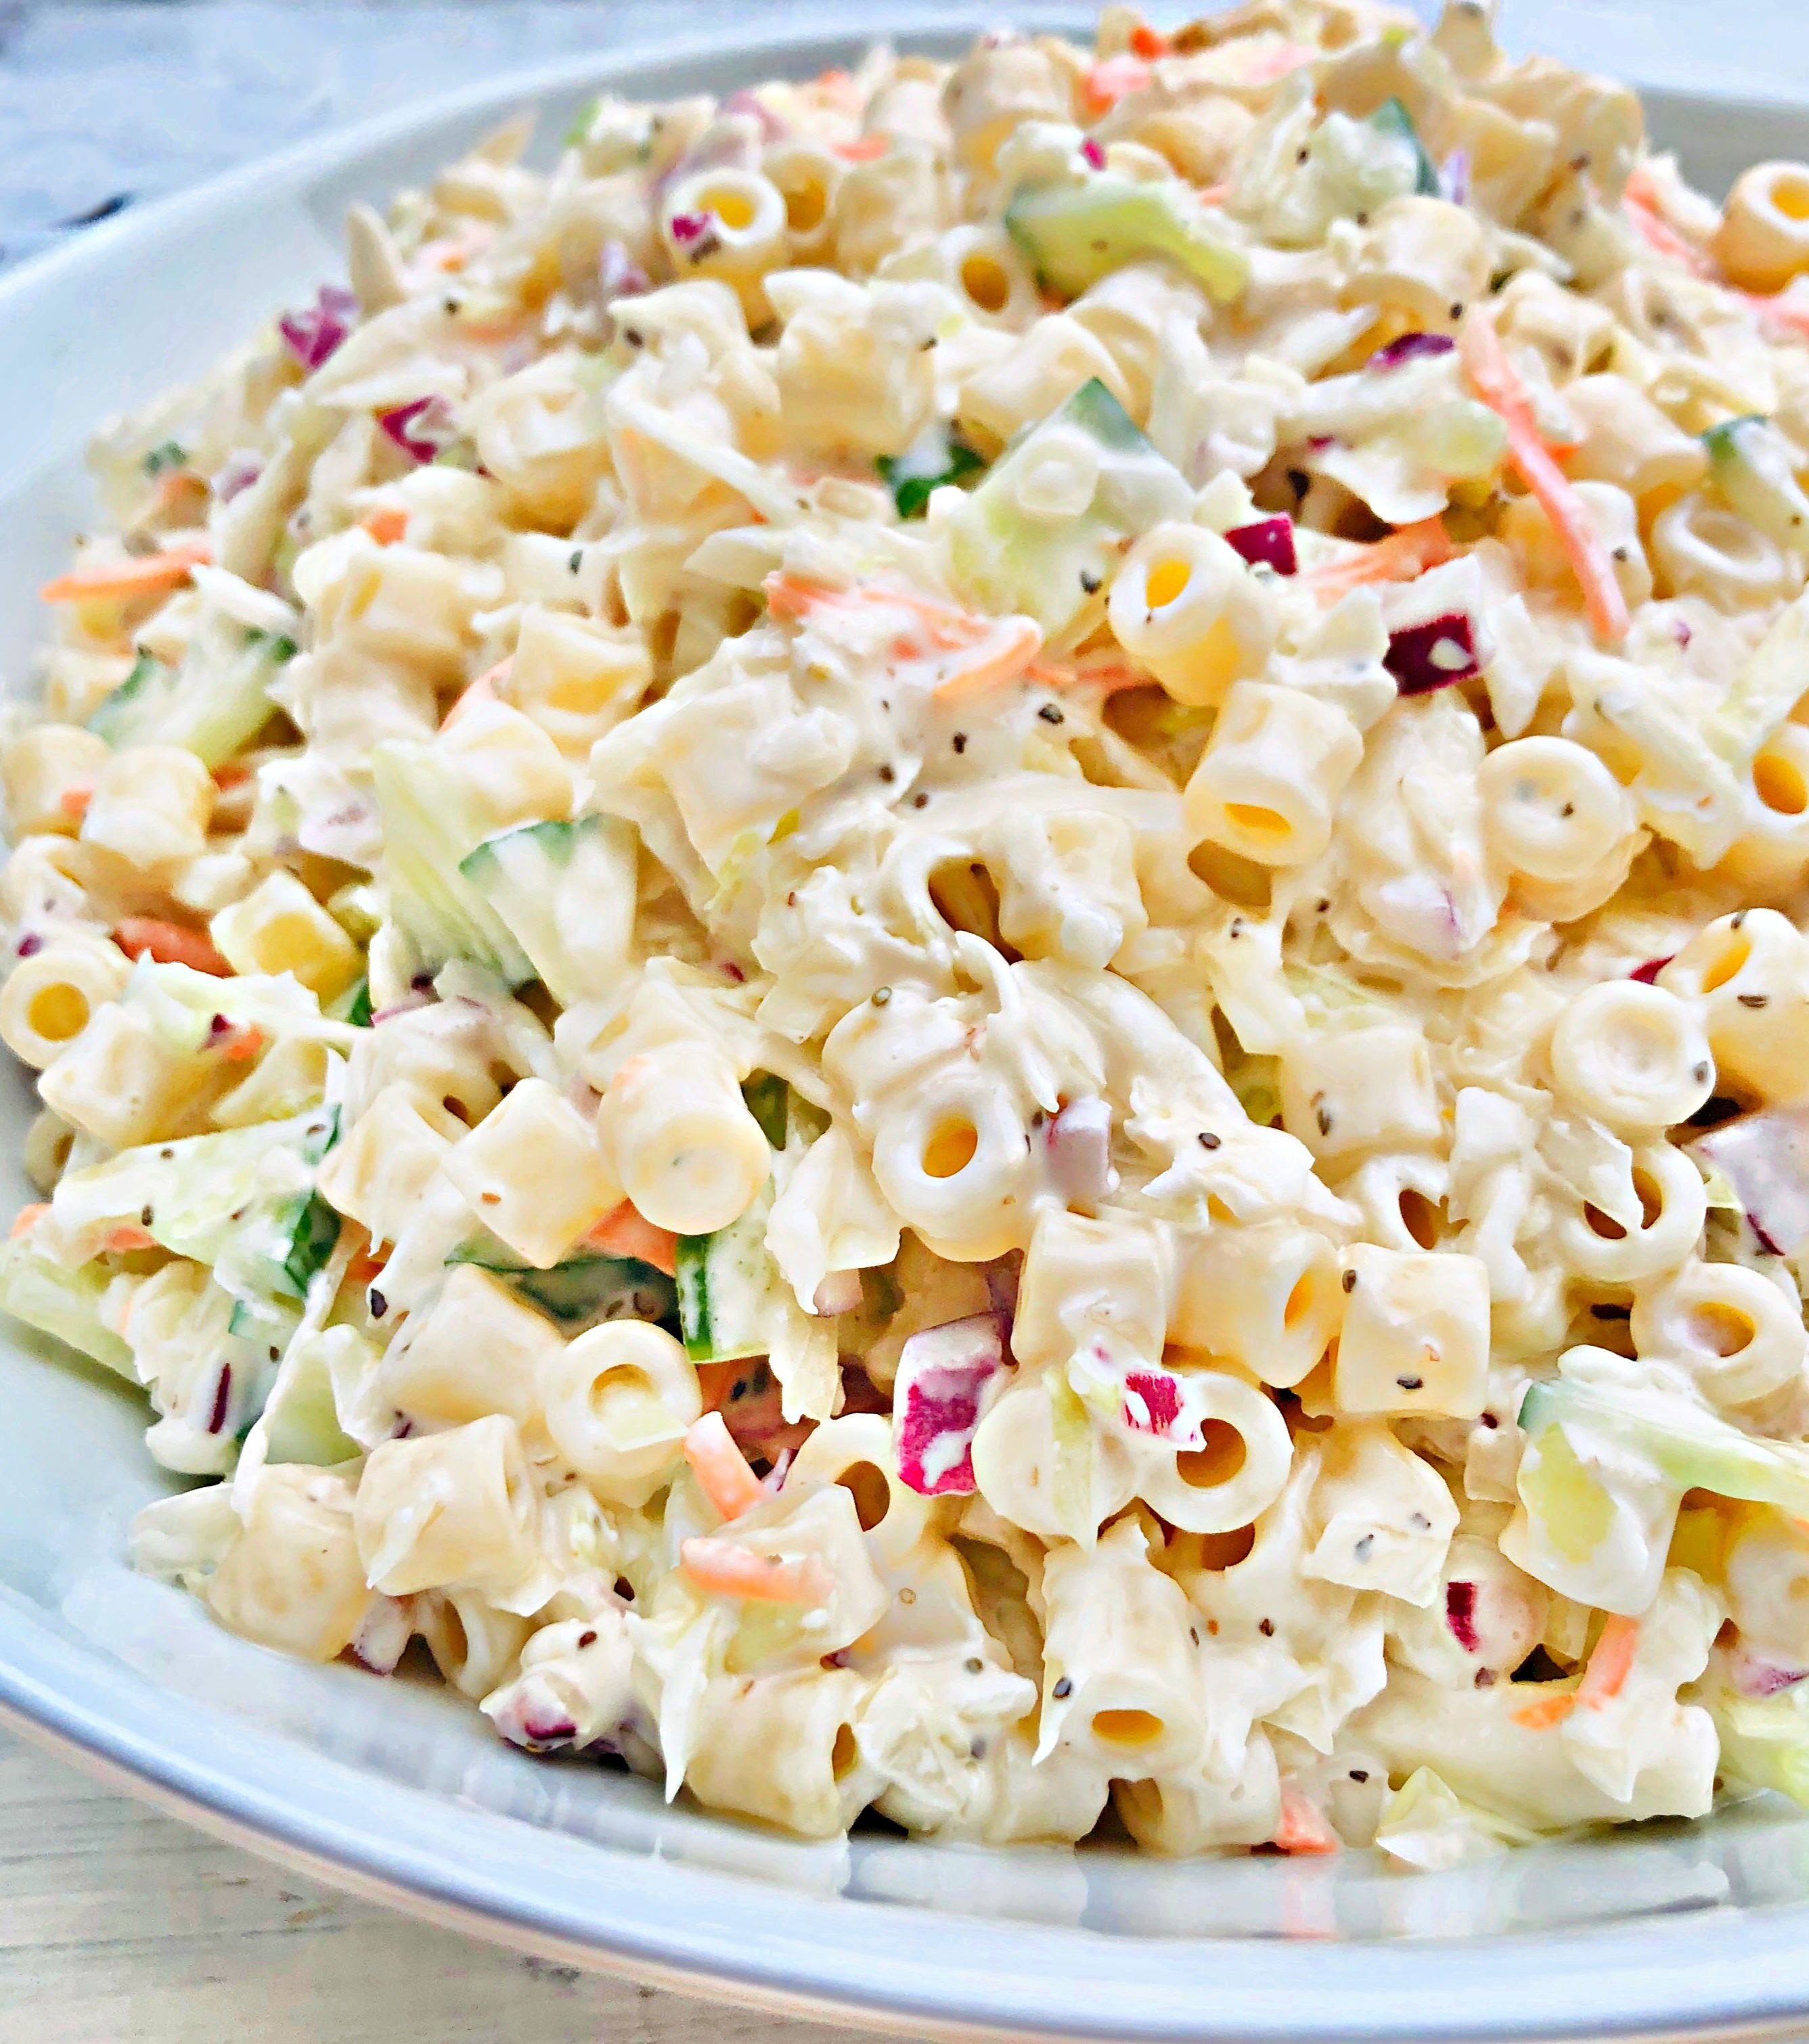 Coleslaw Pasta Salad - An easy, make-ahead side dish recipe perfect for backyard barbecues, potlucks, and holiday gatherings! via @thiswifecooks